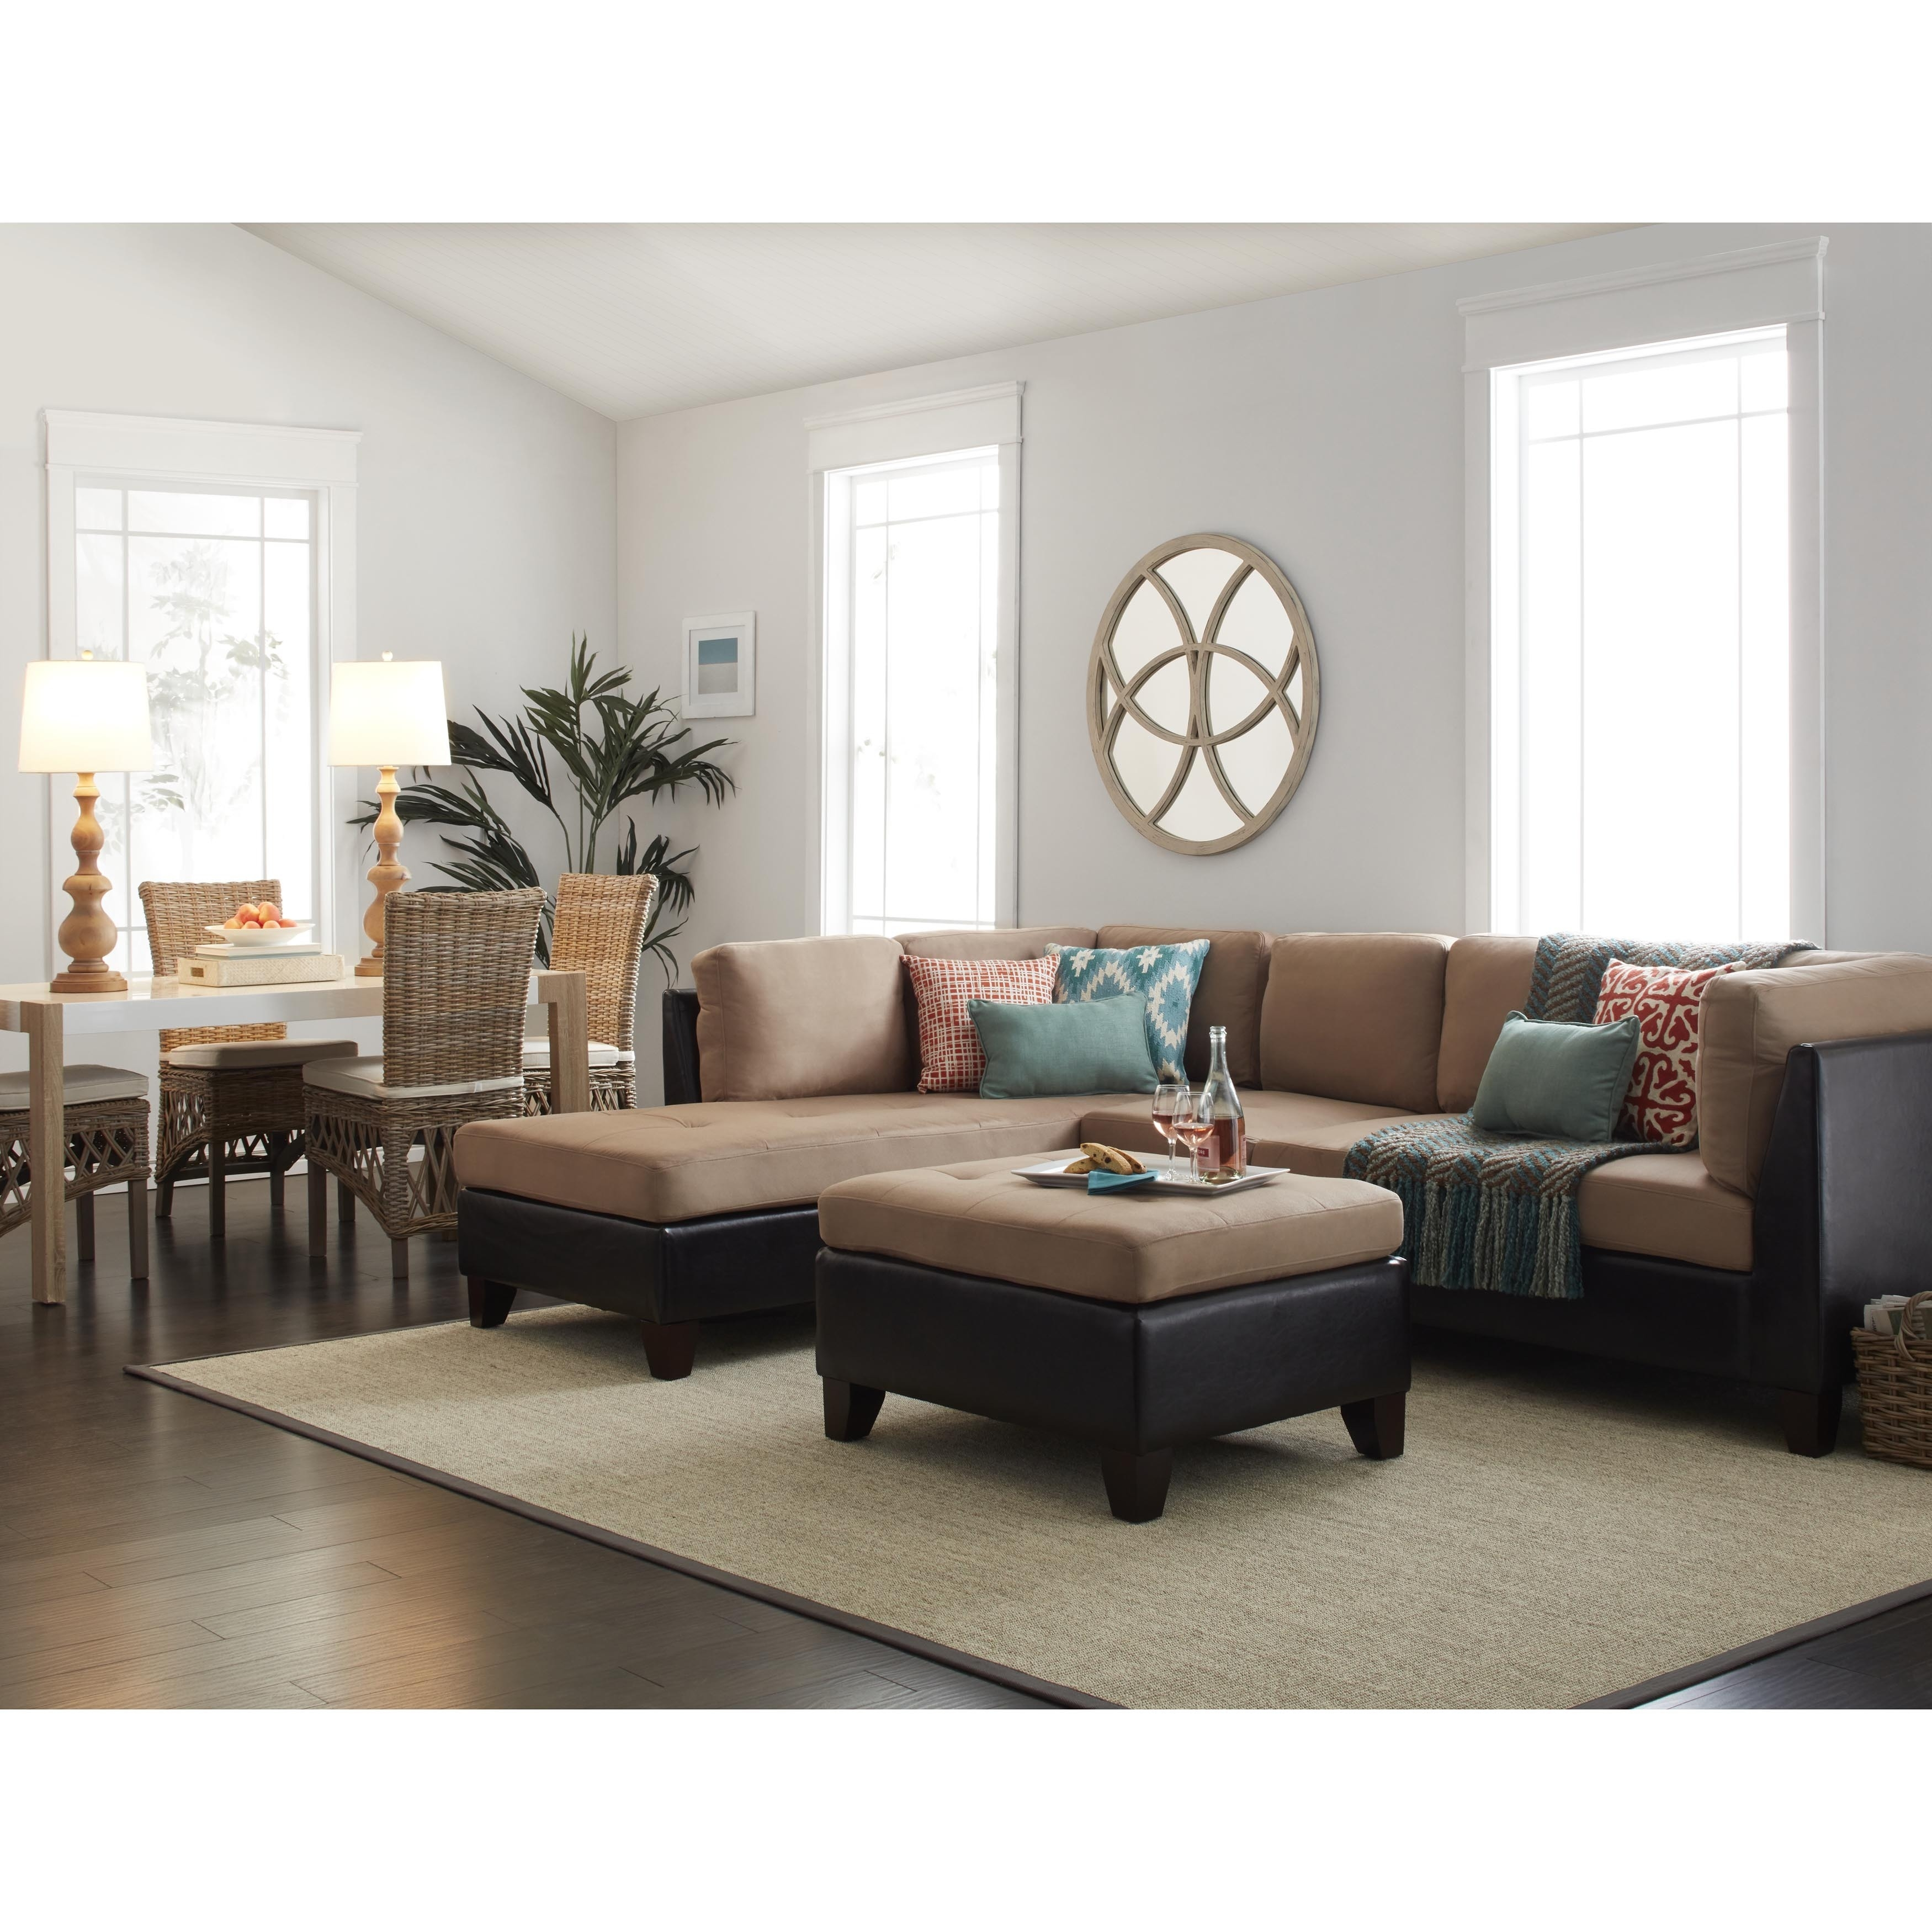 well full leather beige sofa set ottoman sunroom furniture 12 collection of abbyson living charlotte sectional